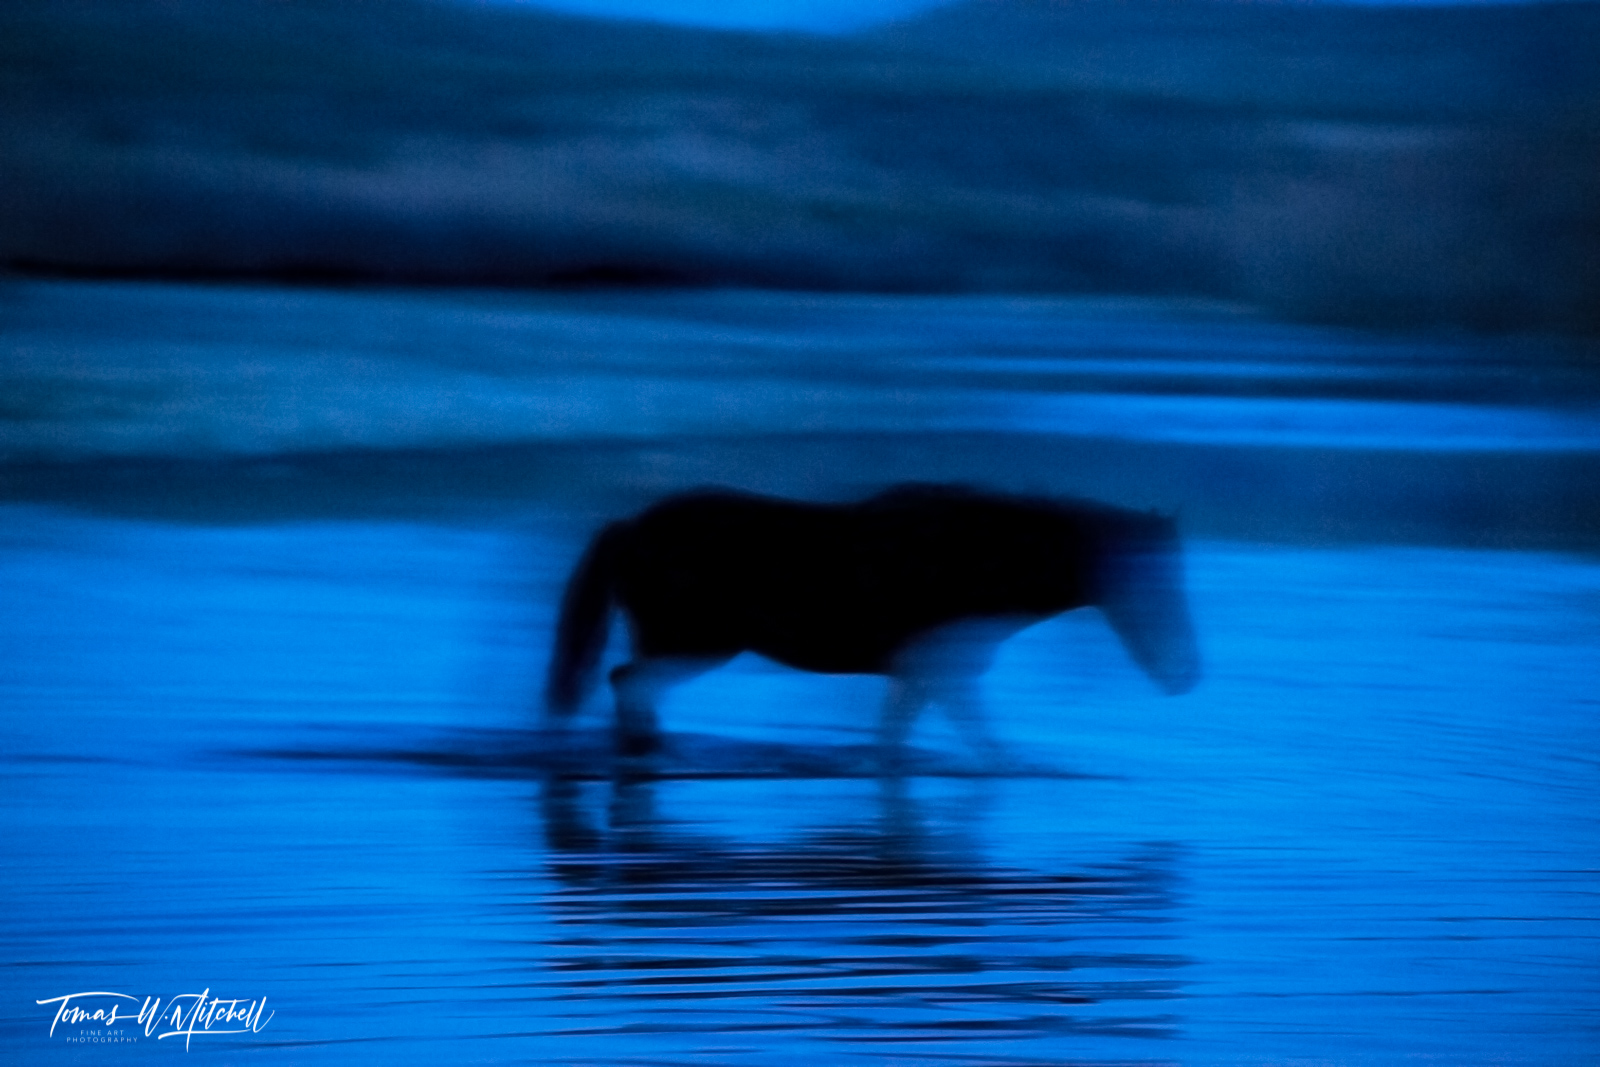 limited edition, fine art, prints, salt river, arizona, photograph, wild horses, abstract, blue, ghost, horse, fantasma azul, , photo